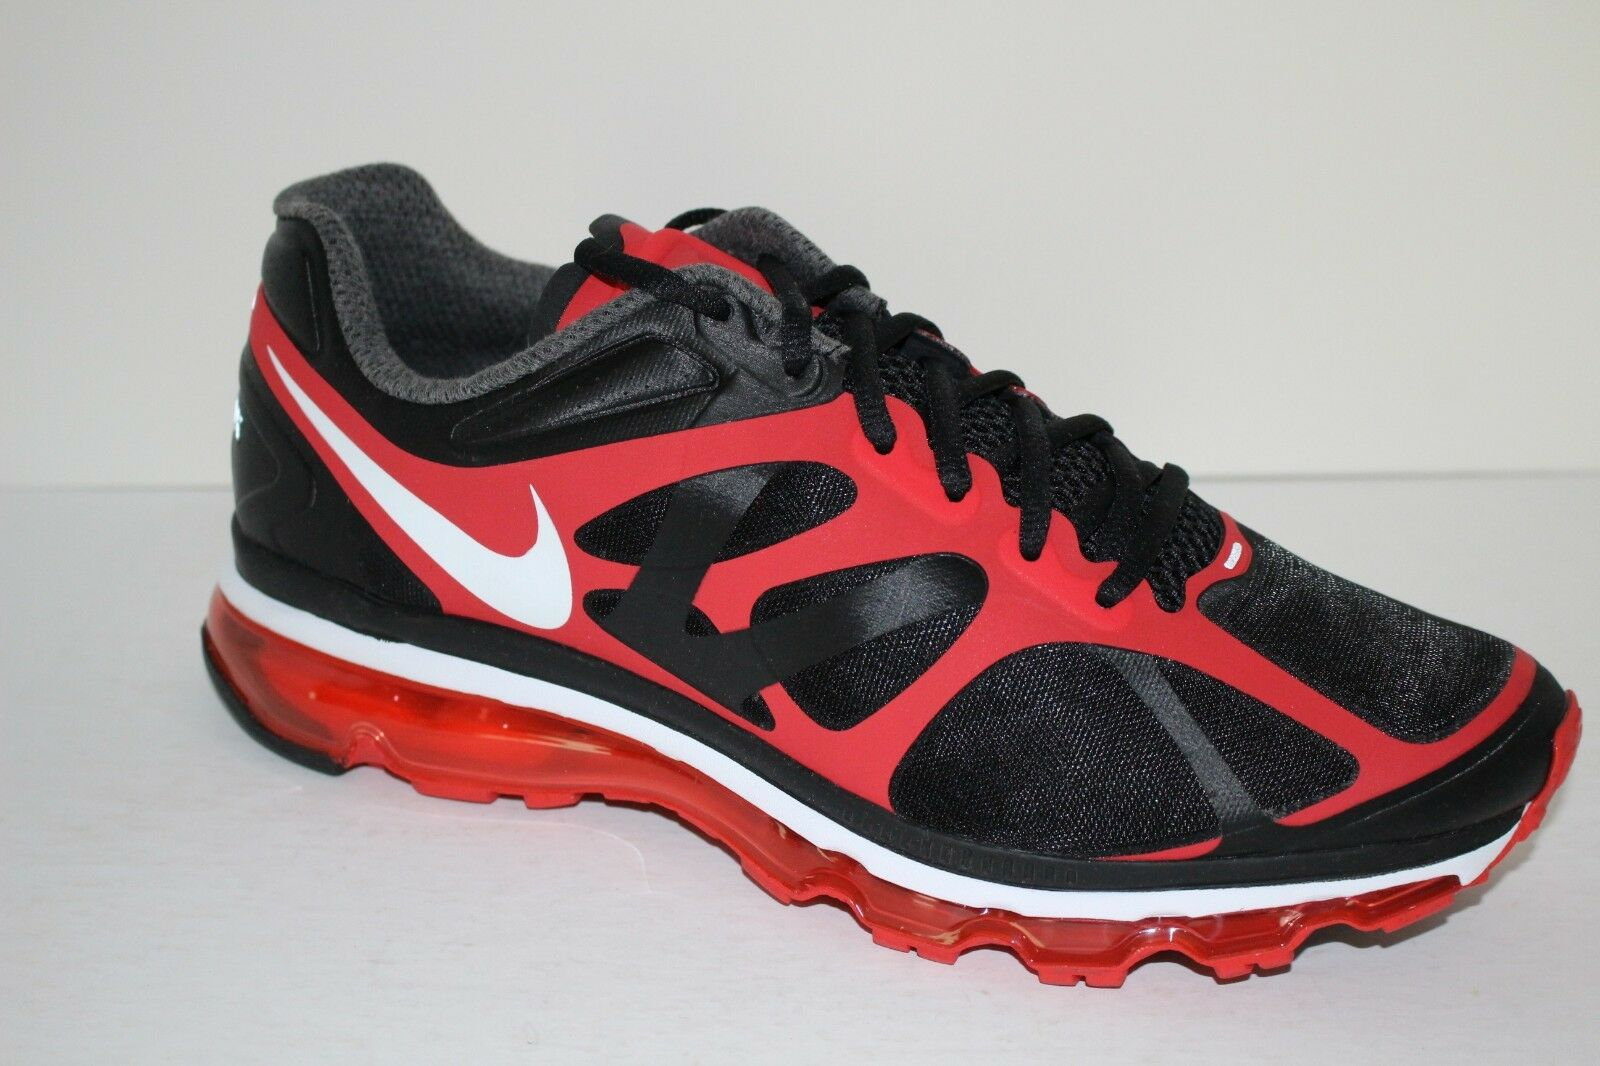 ca3bd718ba Nike Air Max + 2012 Sz 11 Running Course shoes Action Red Sneakers Black  Men's nudfmm6136-new shoes